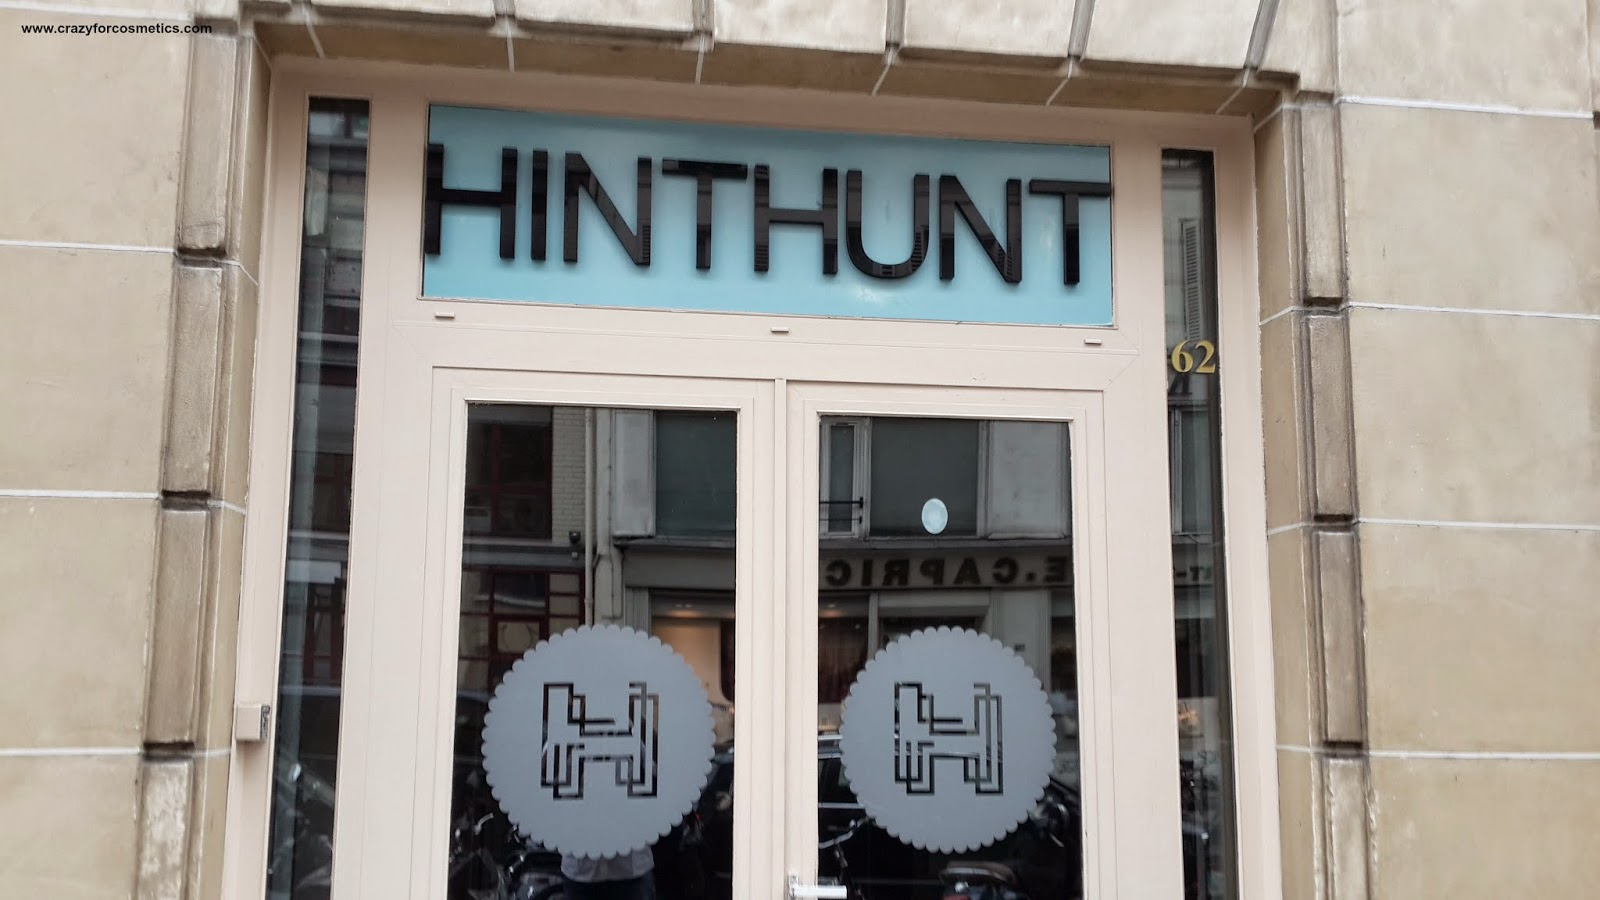 Hint Hunt Paris Live Escape Game tripadvisor rated no 1